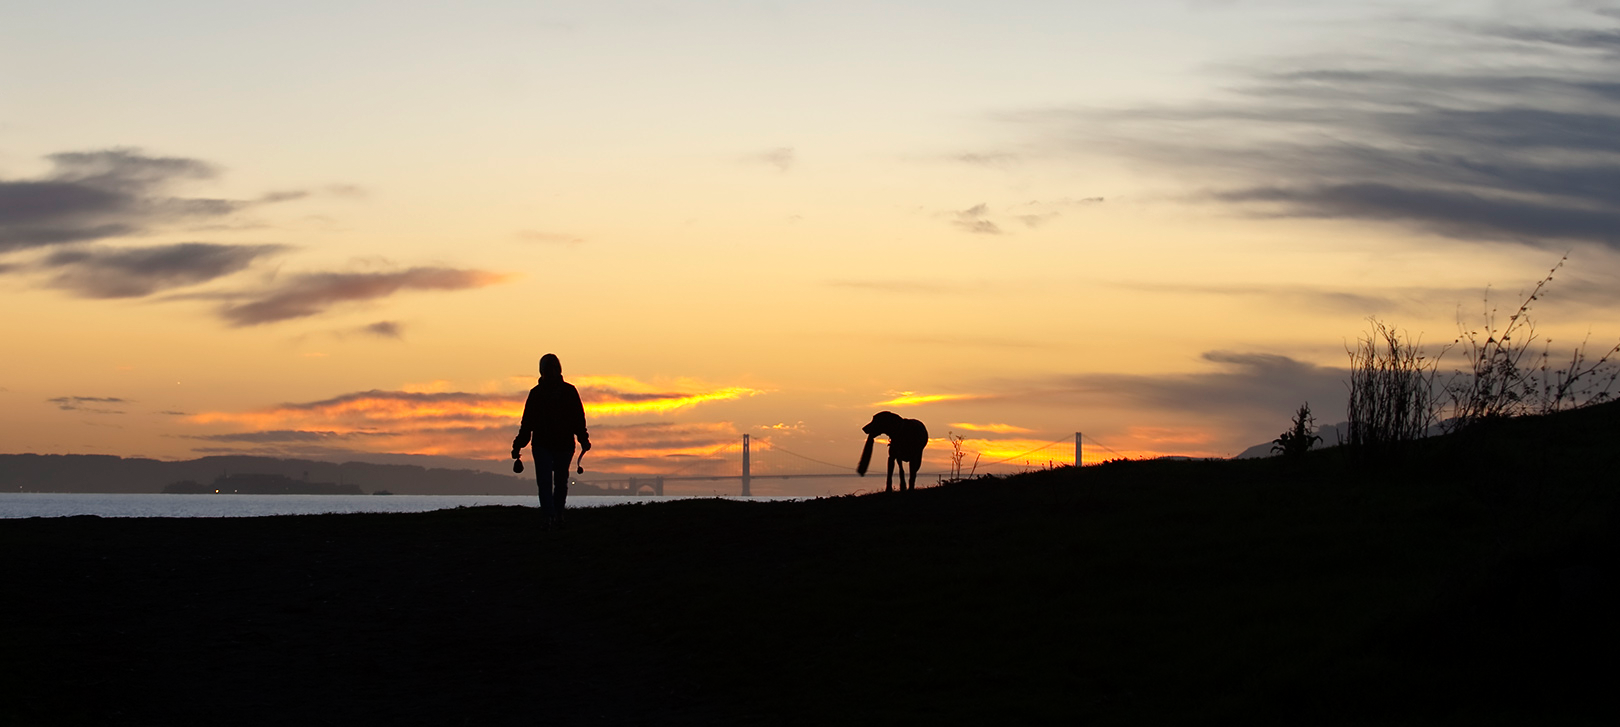 Albany Beach person walking dog